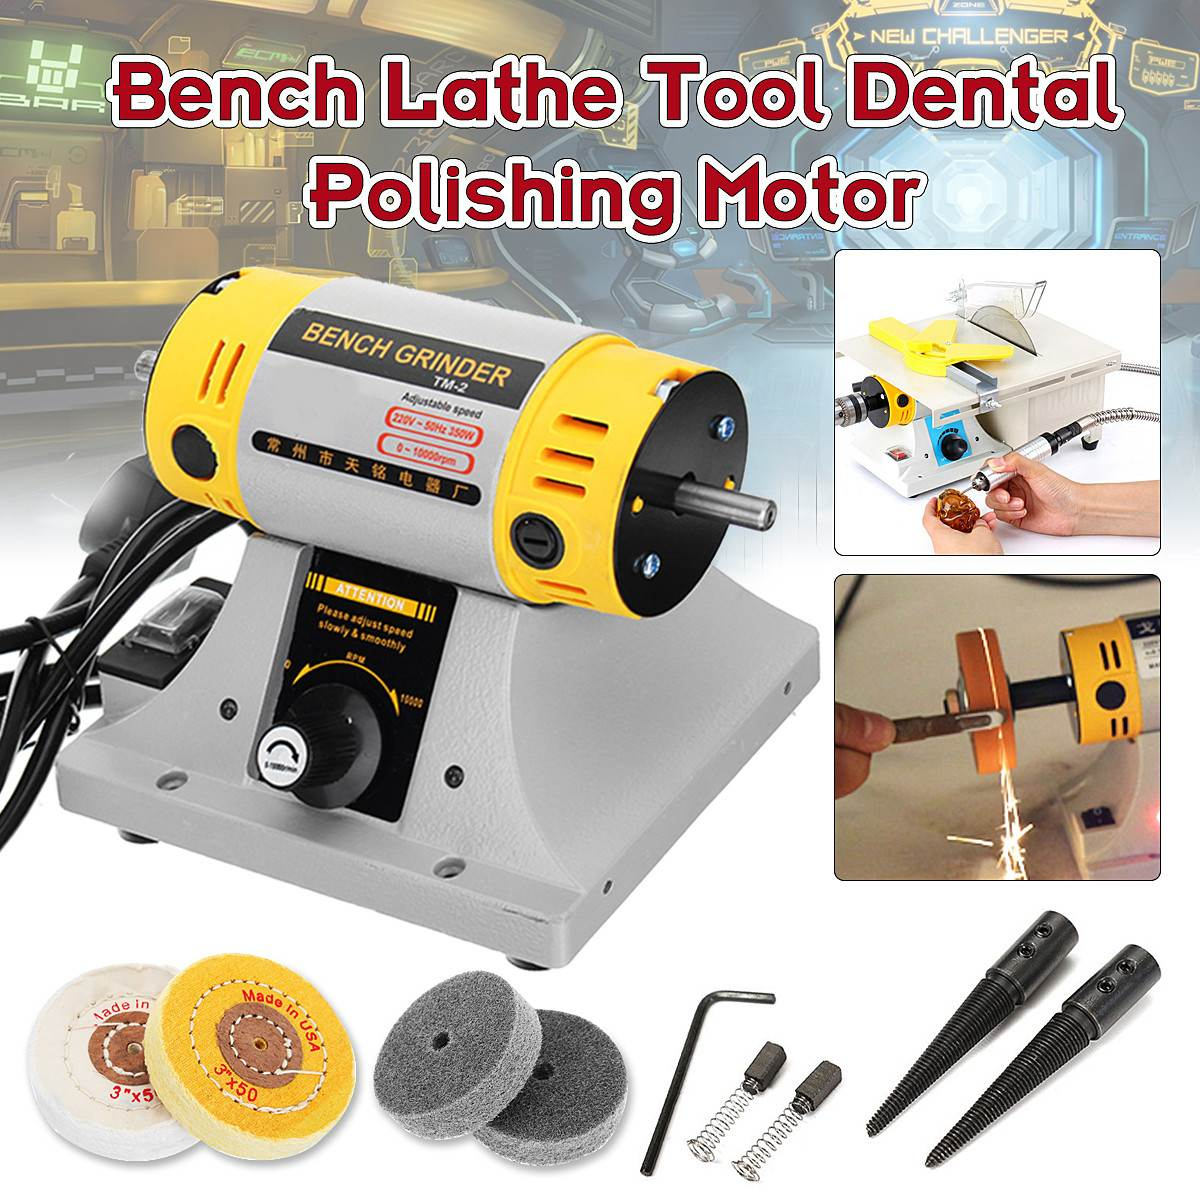 220V 350W Polishing Machine for Jewelry Dental Bench Lathe Machine Motor Grinder With Accessories220V 350W Polishing Machine for Jewelry Dental Bench Lathe Machine Motor Grinder With Accessories